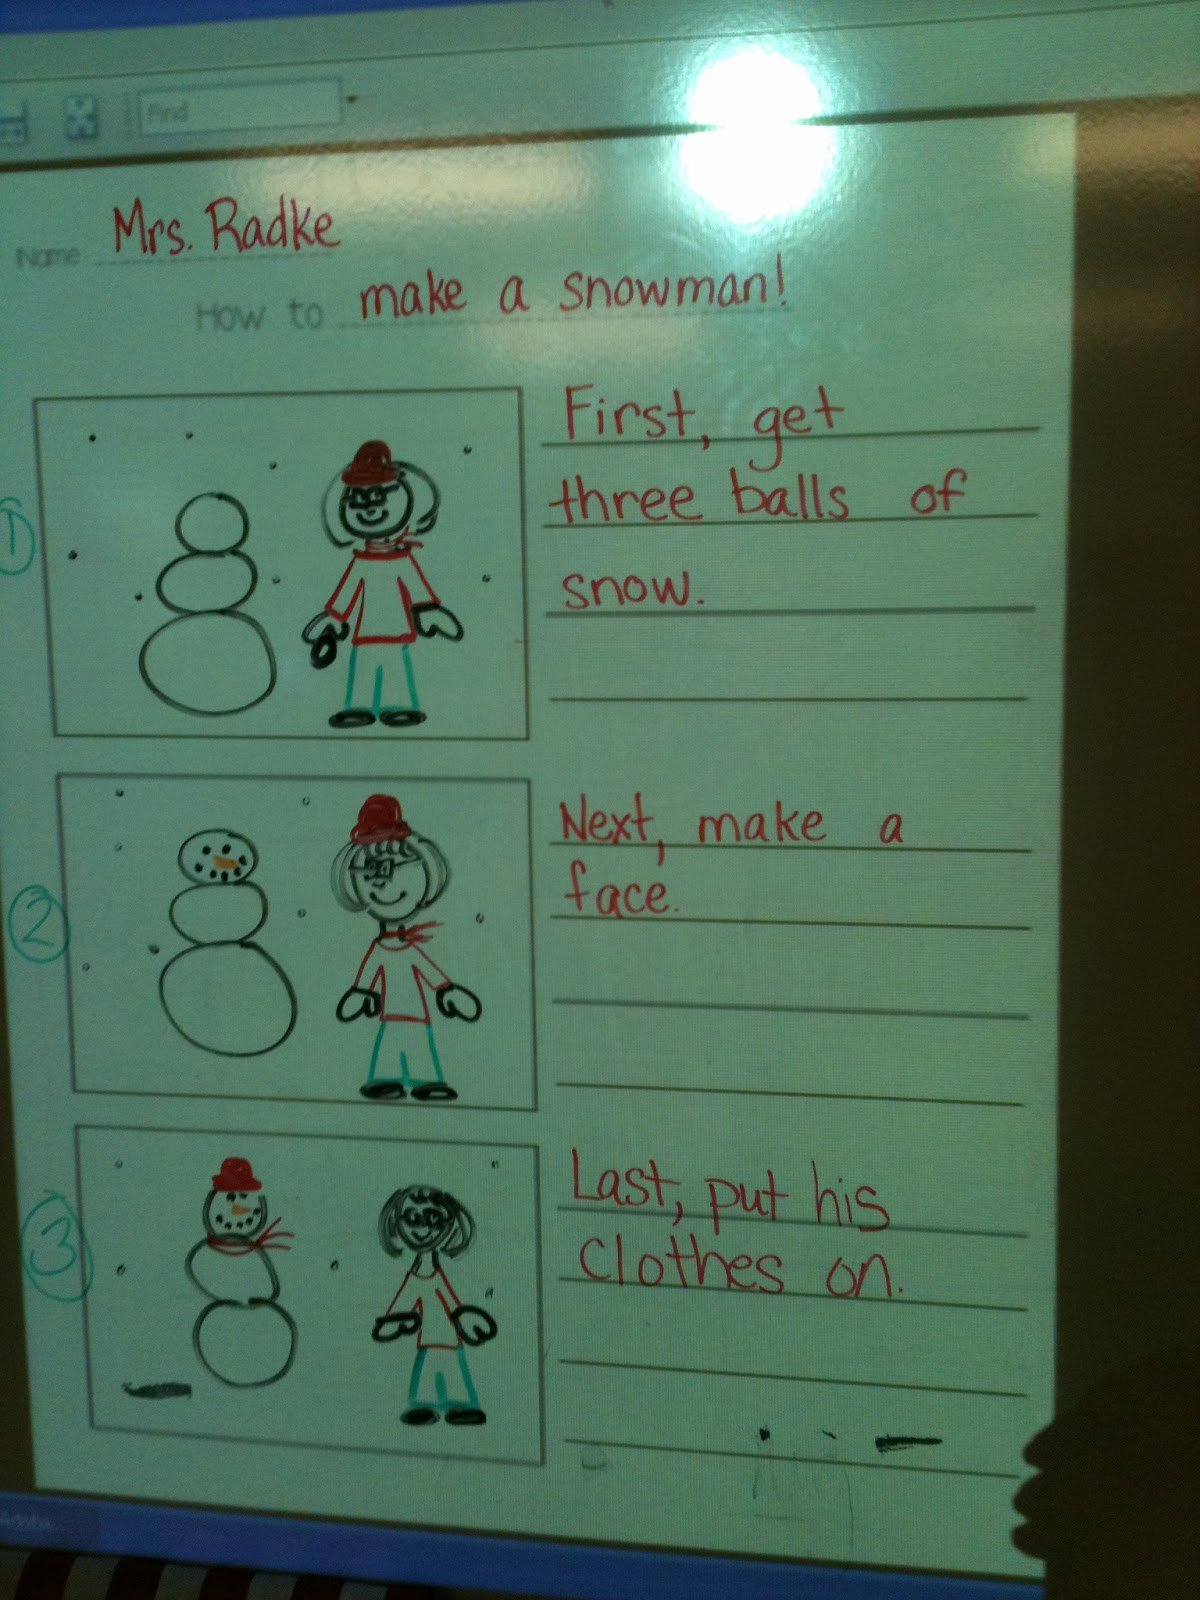 Mini Lesson Template Lucy Calkins Elegant Kreative In Kinder Teaching How to Writing